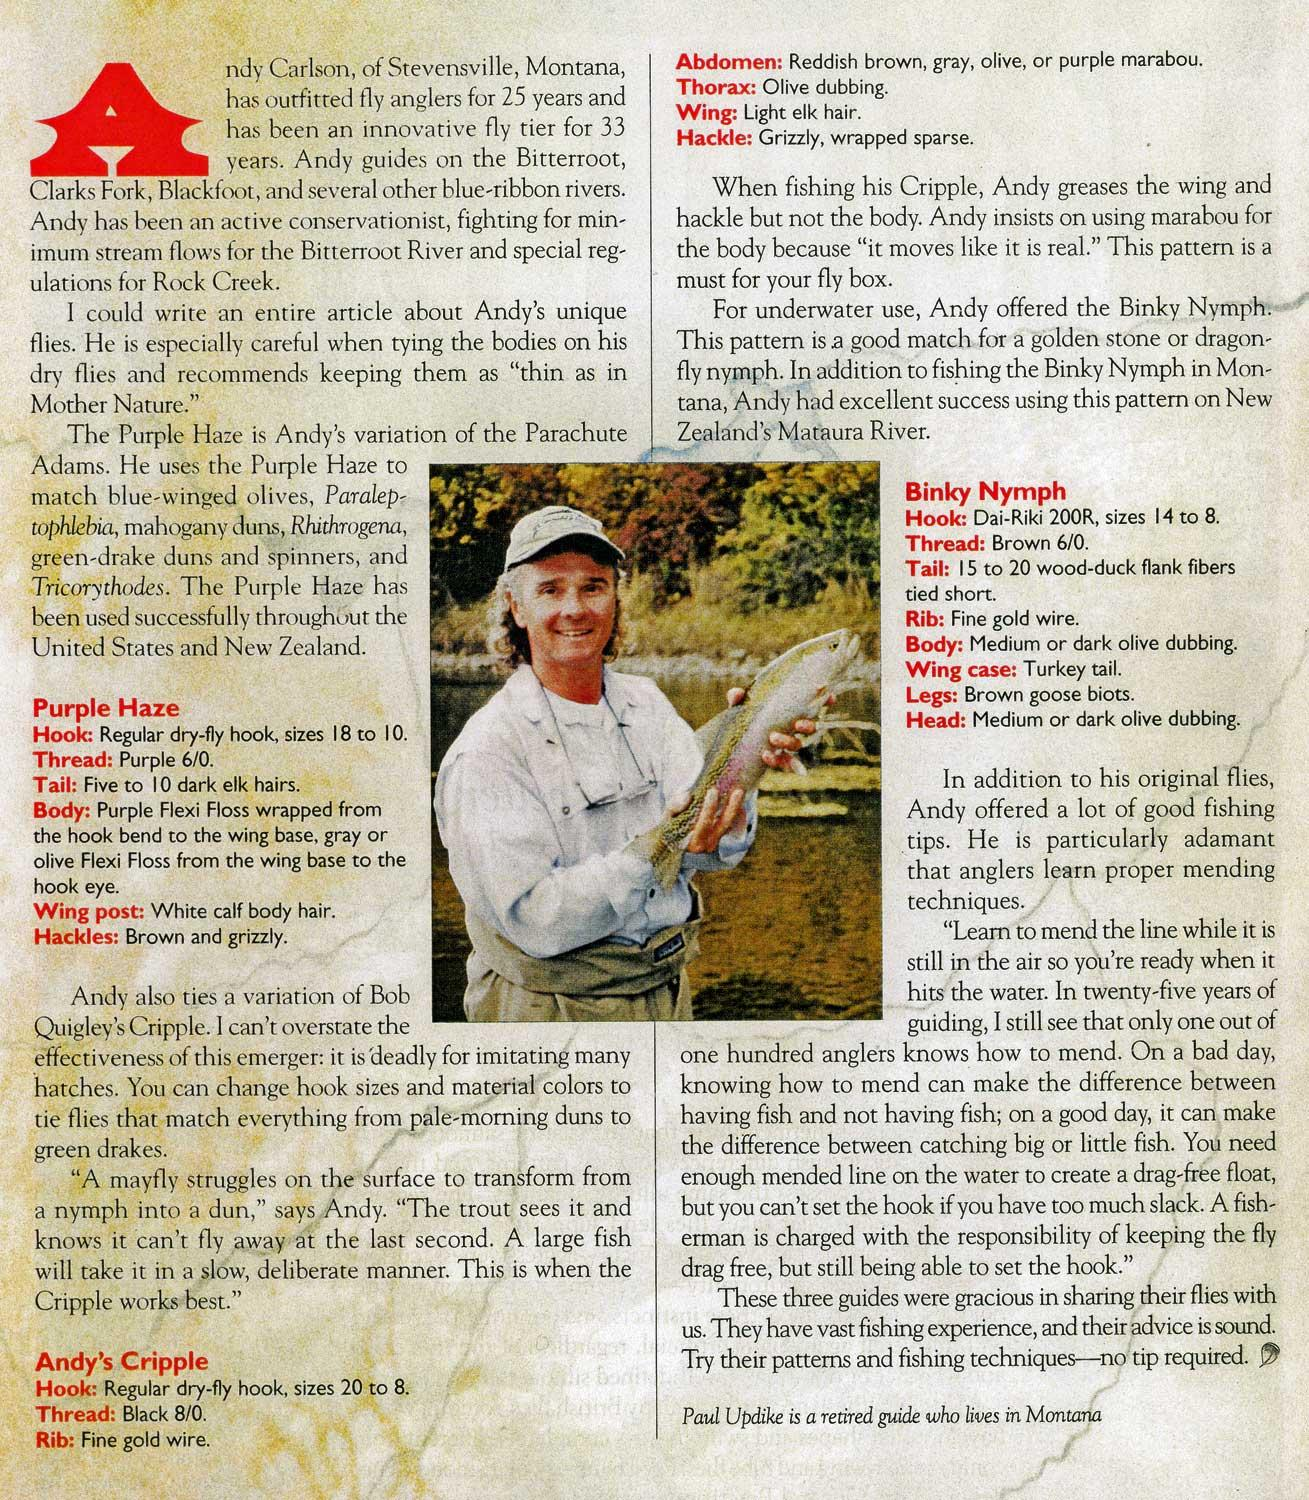 Fly Tying - Andy Carlson article in Fly Tyer Magazine -Purple Haze, Binky Nymph and Andy's Cripple